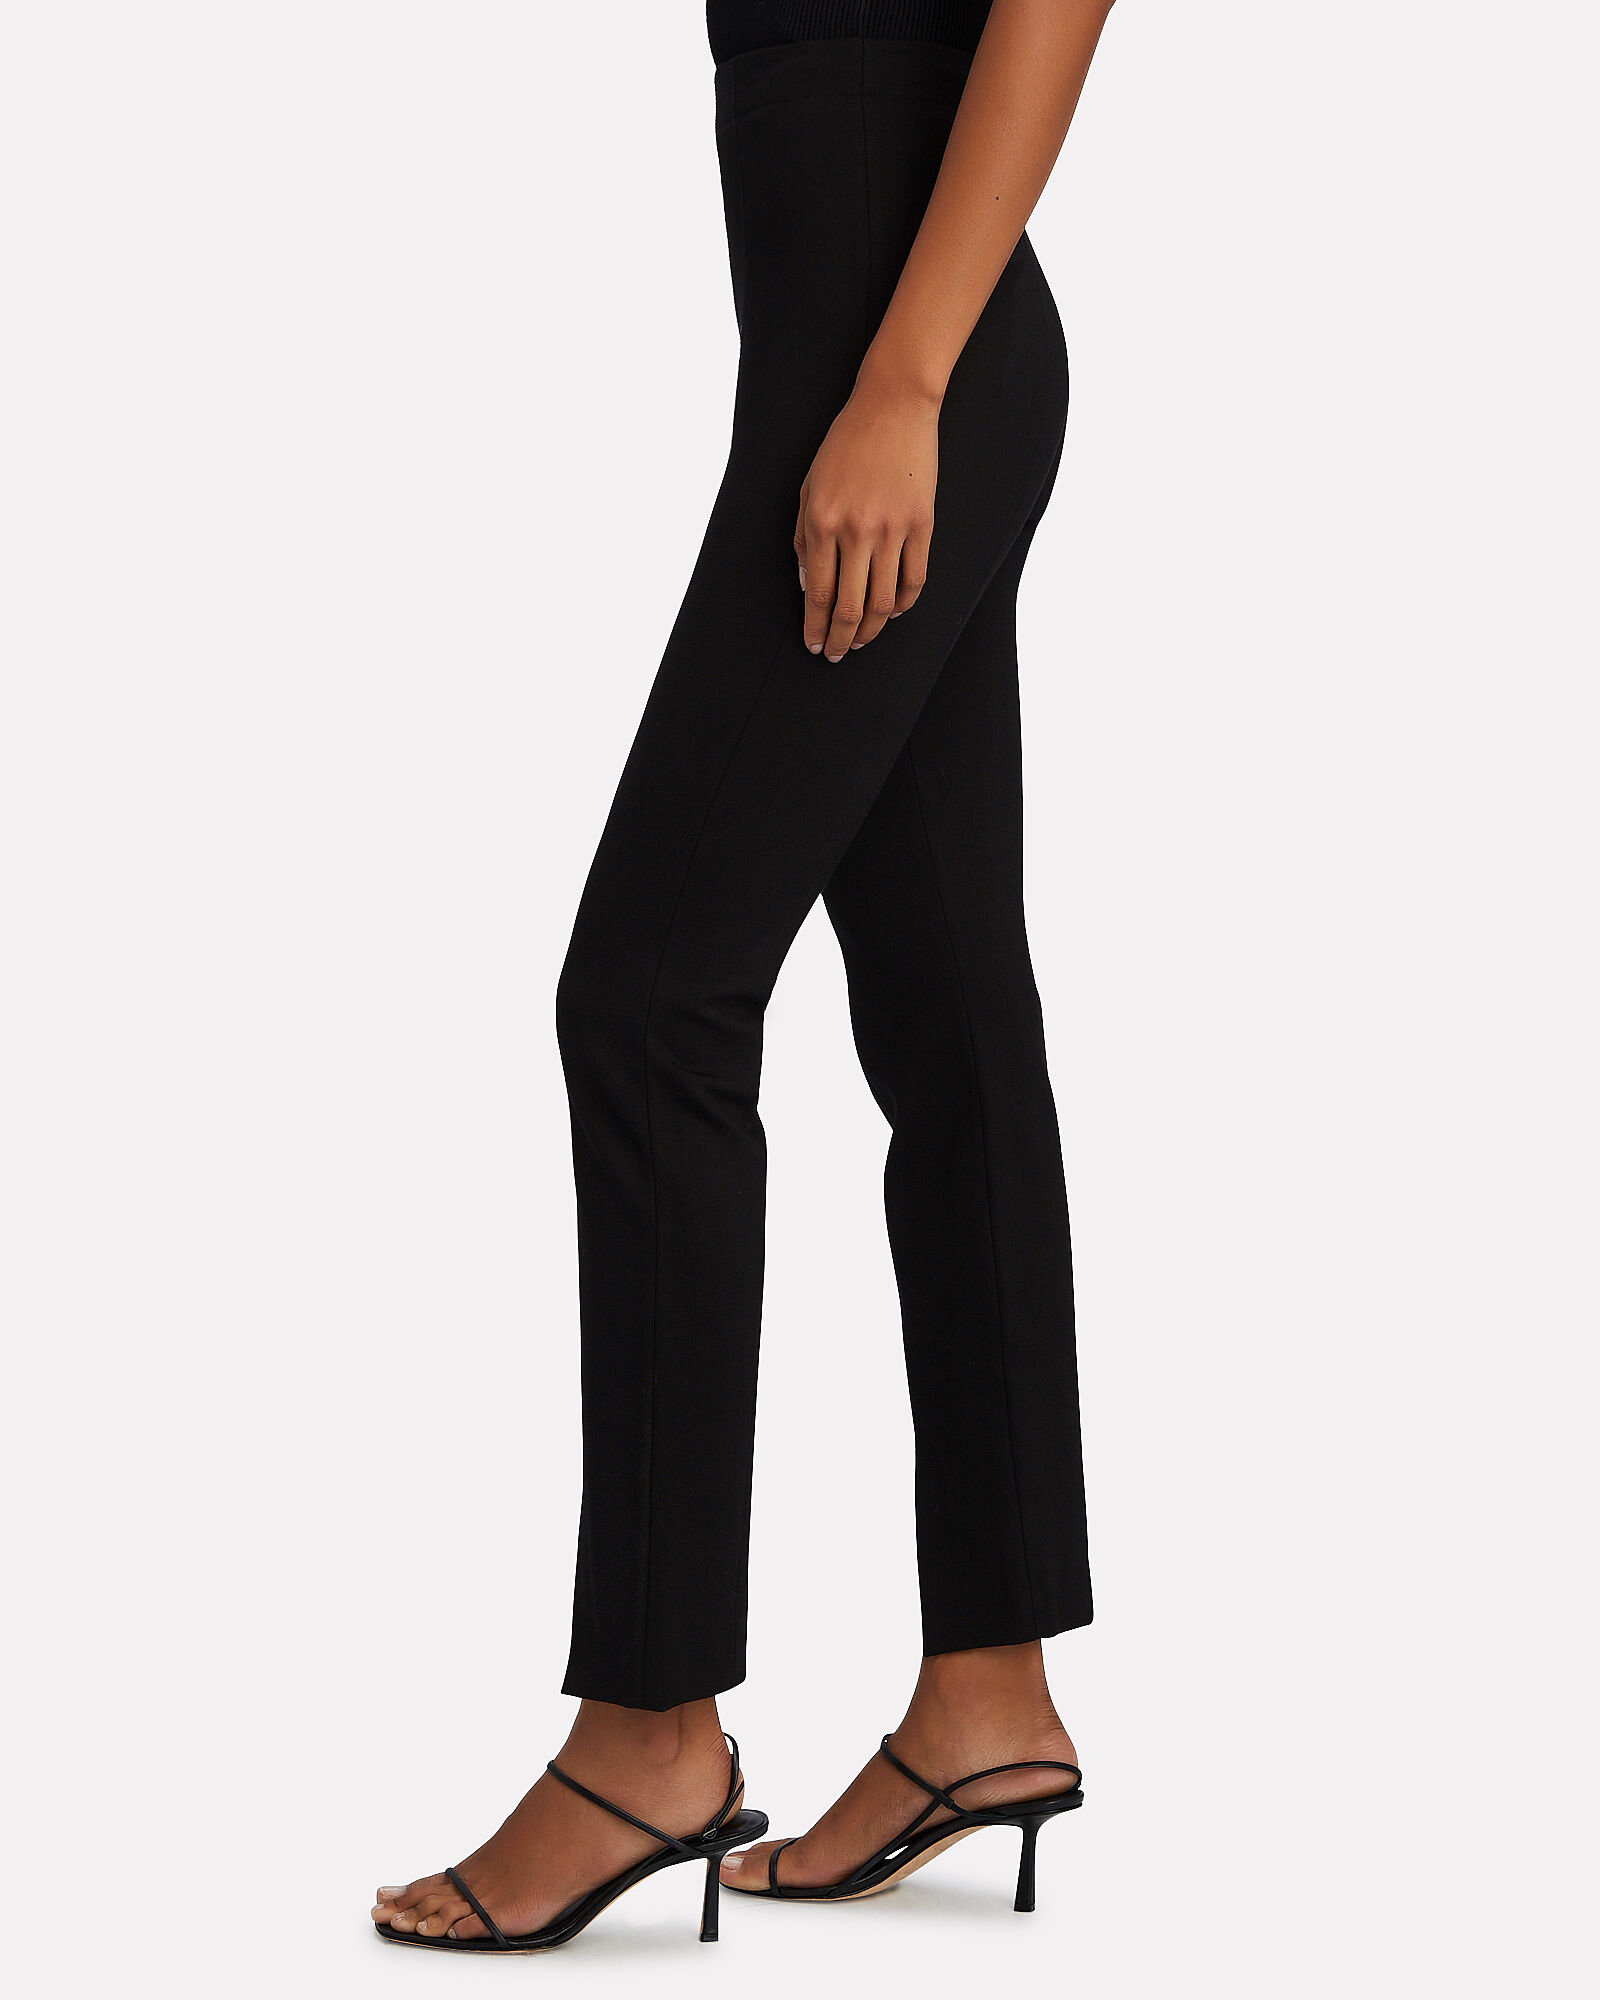 Bond Stretch Knit Leggings, BLACK, hi-res